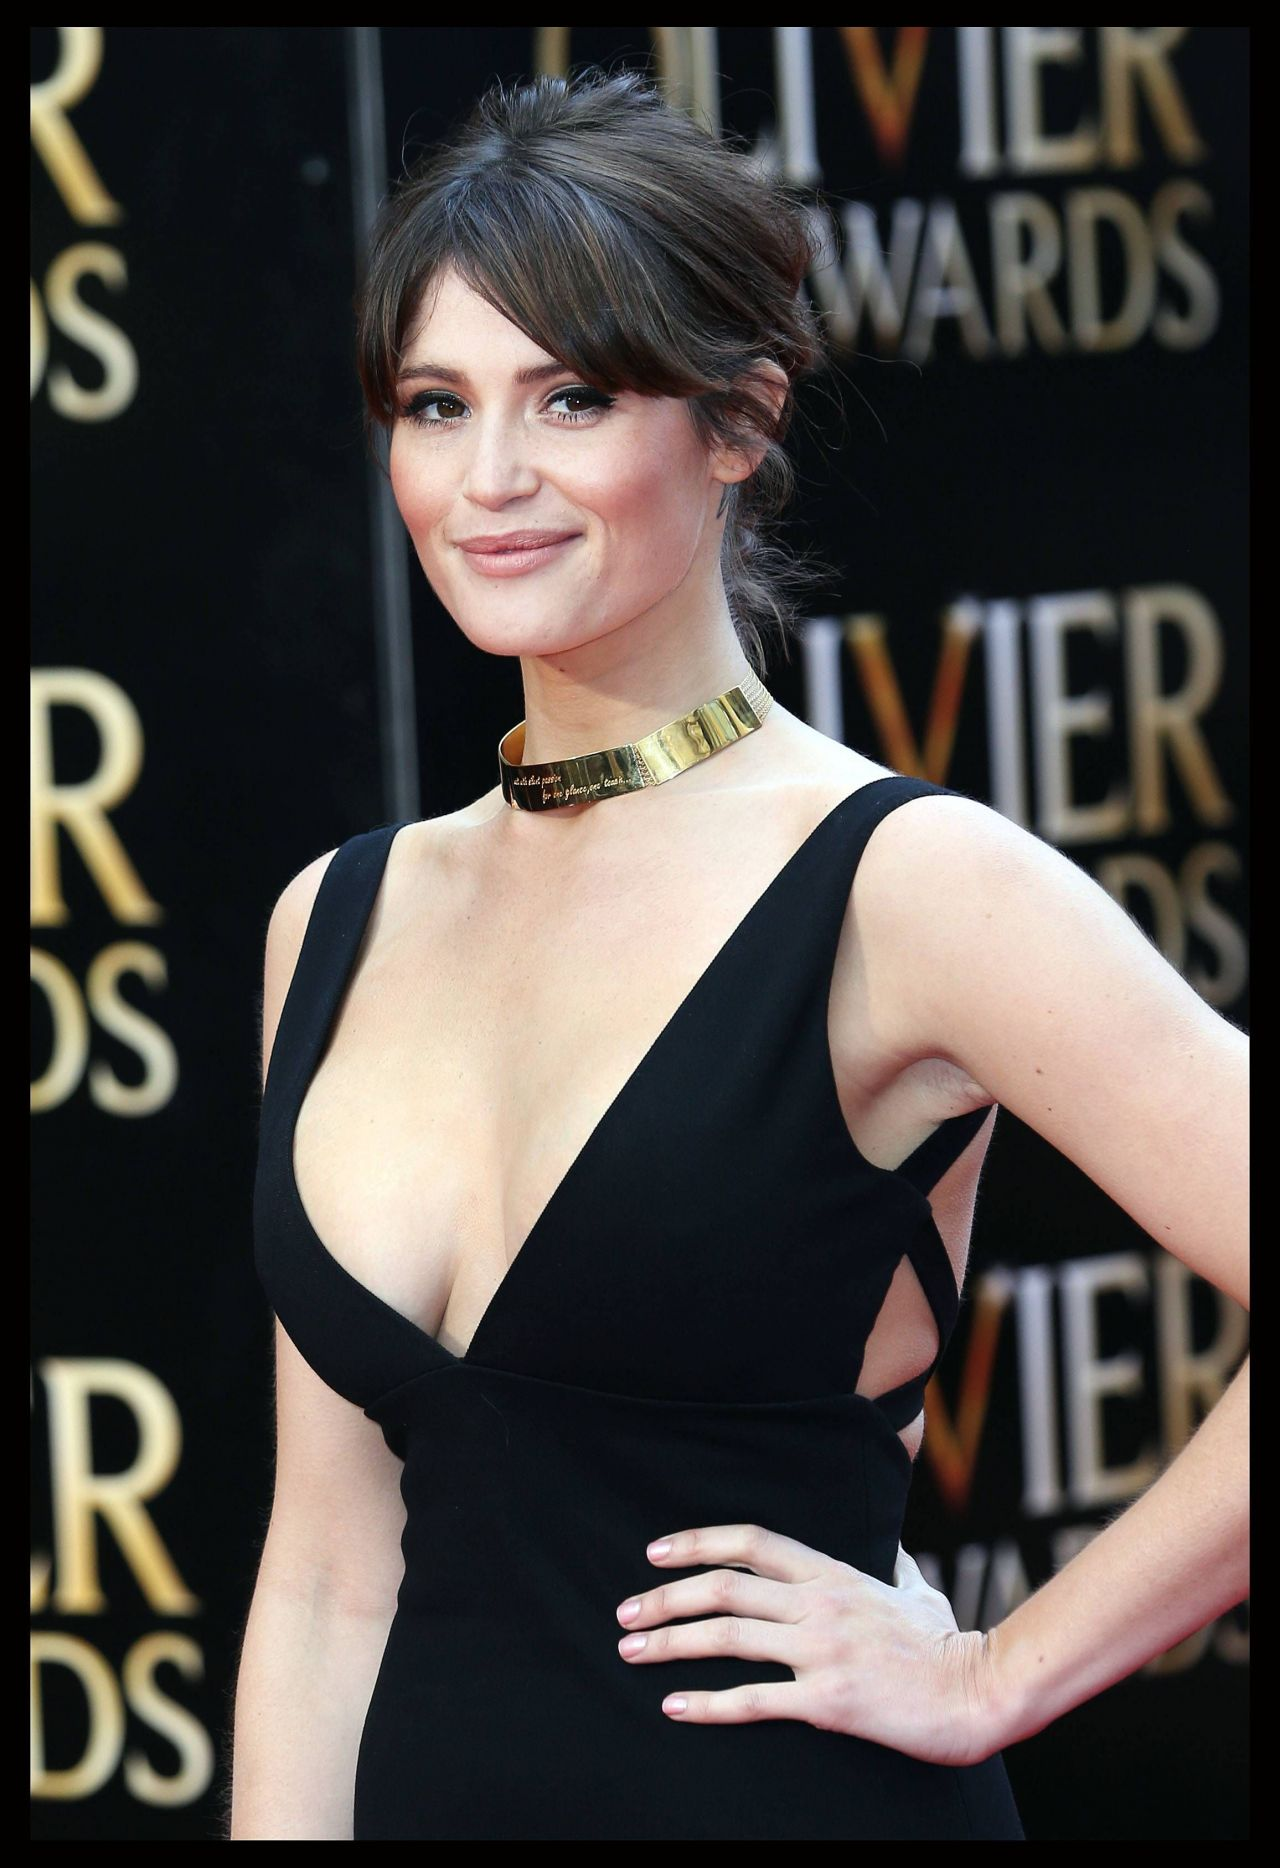 Gemma Arterton HD wallpapers, Desktop wallpaper - most viewed